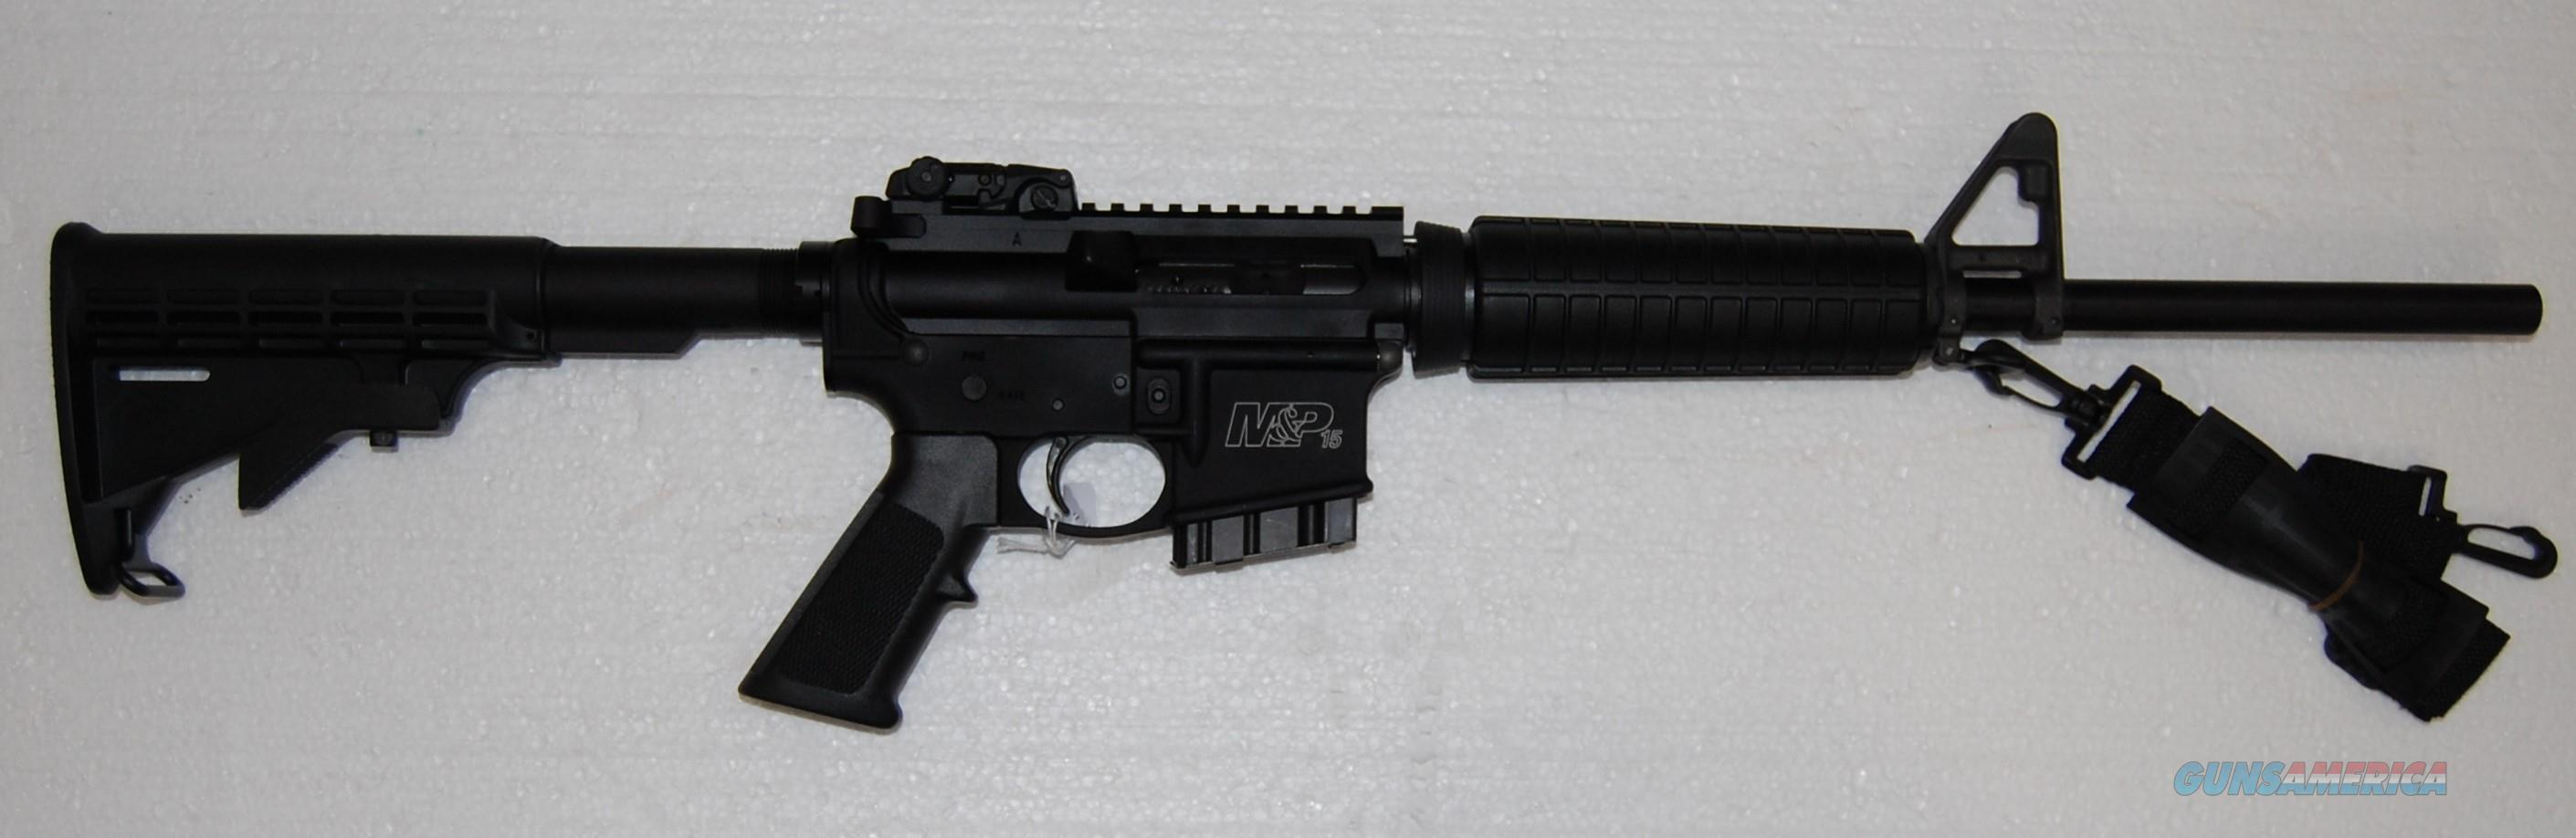 Smith and Wesson M&P 15  Guns > Rifles > Smith & Wesson Rifles > M&P